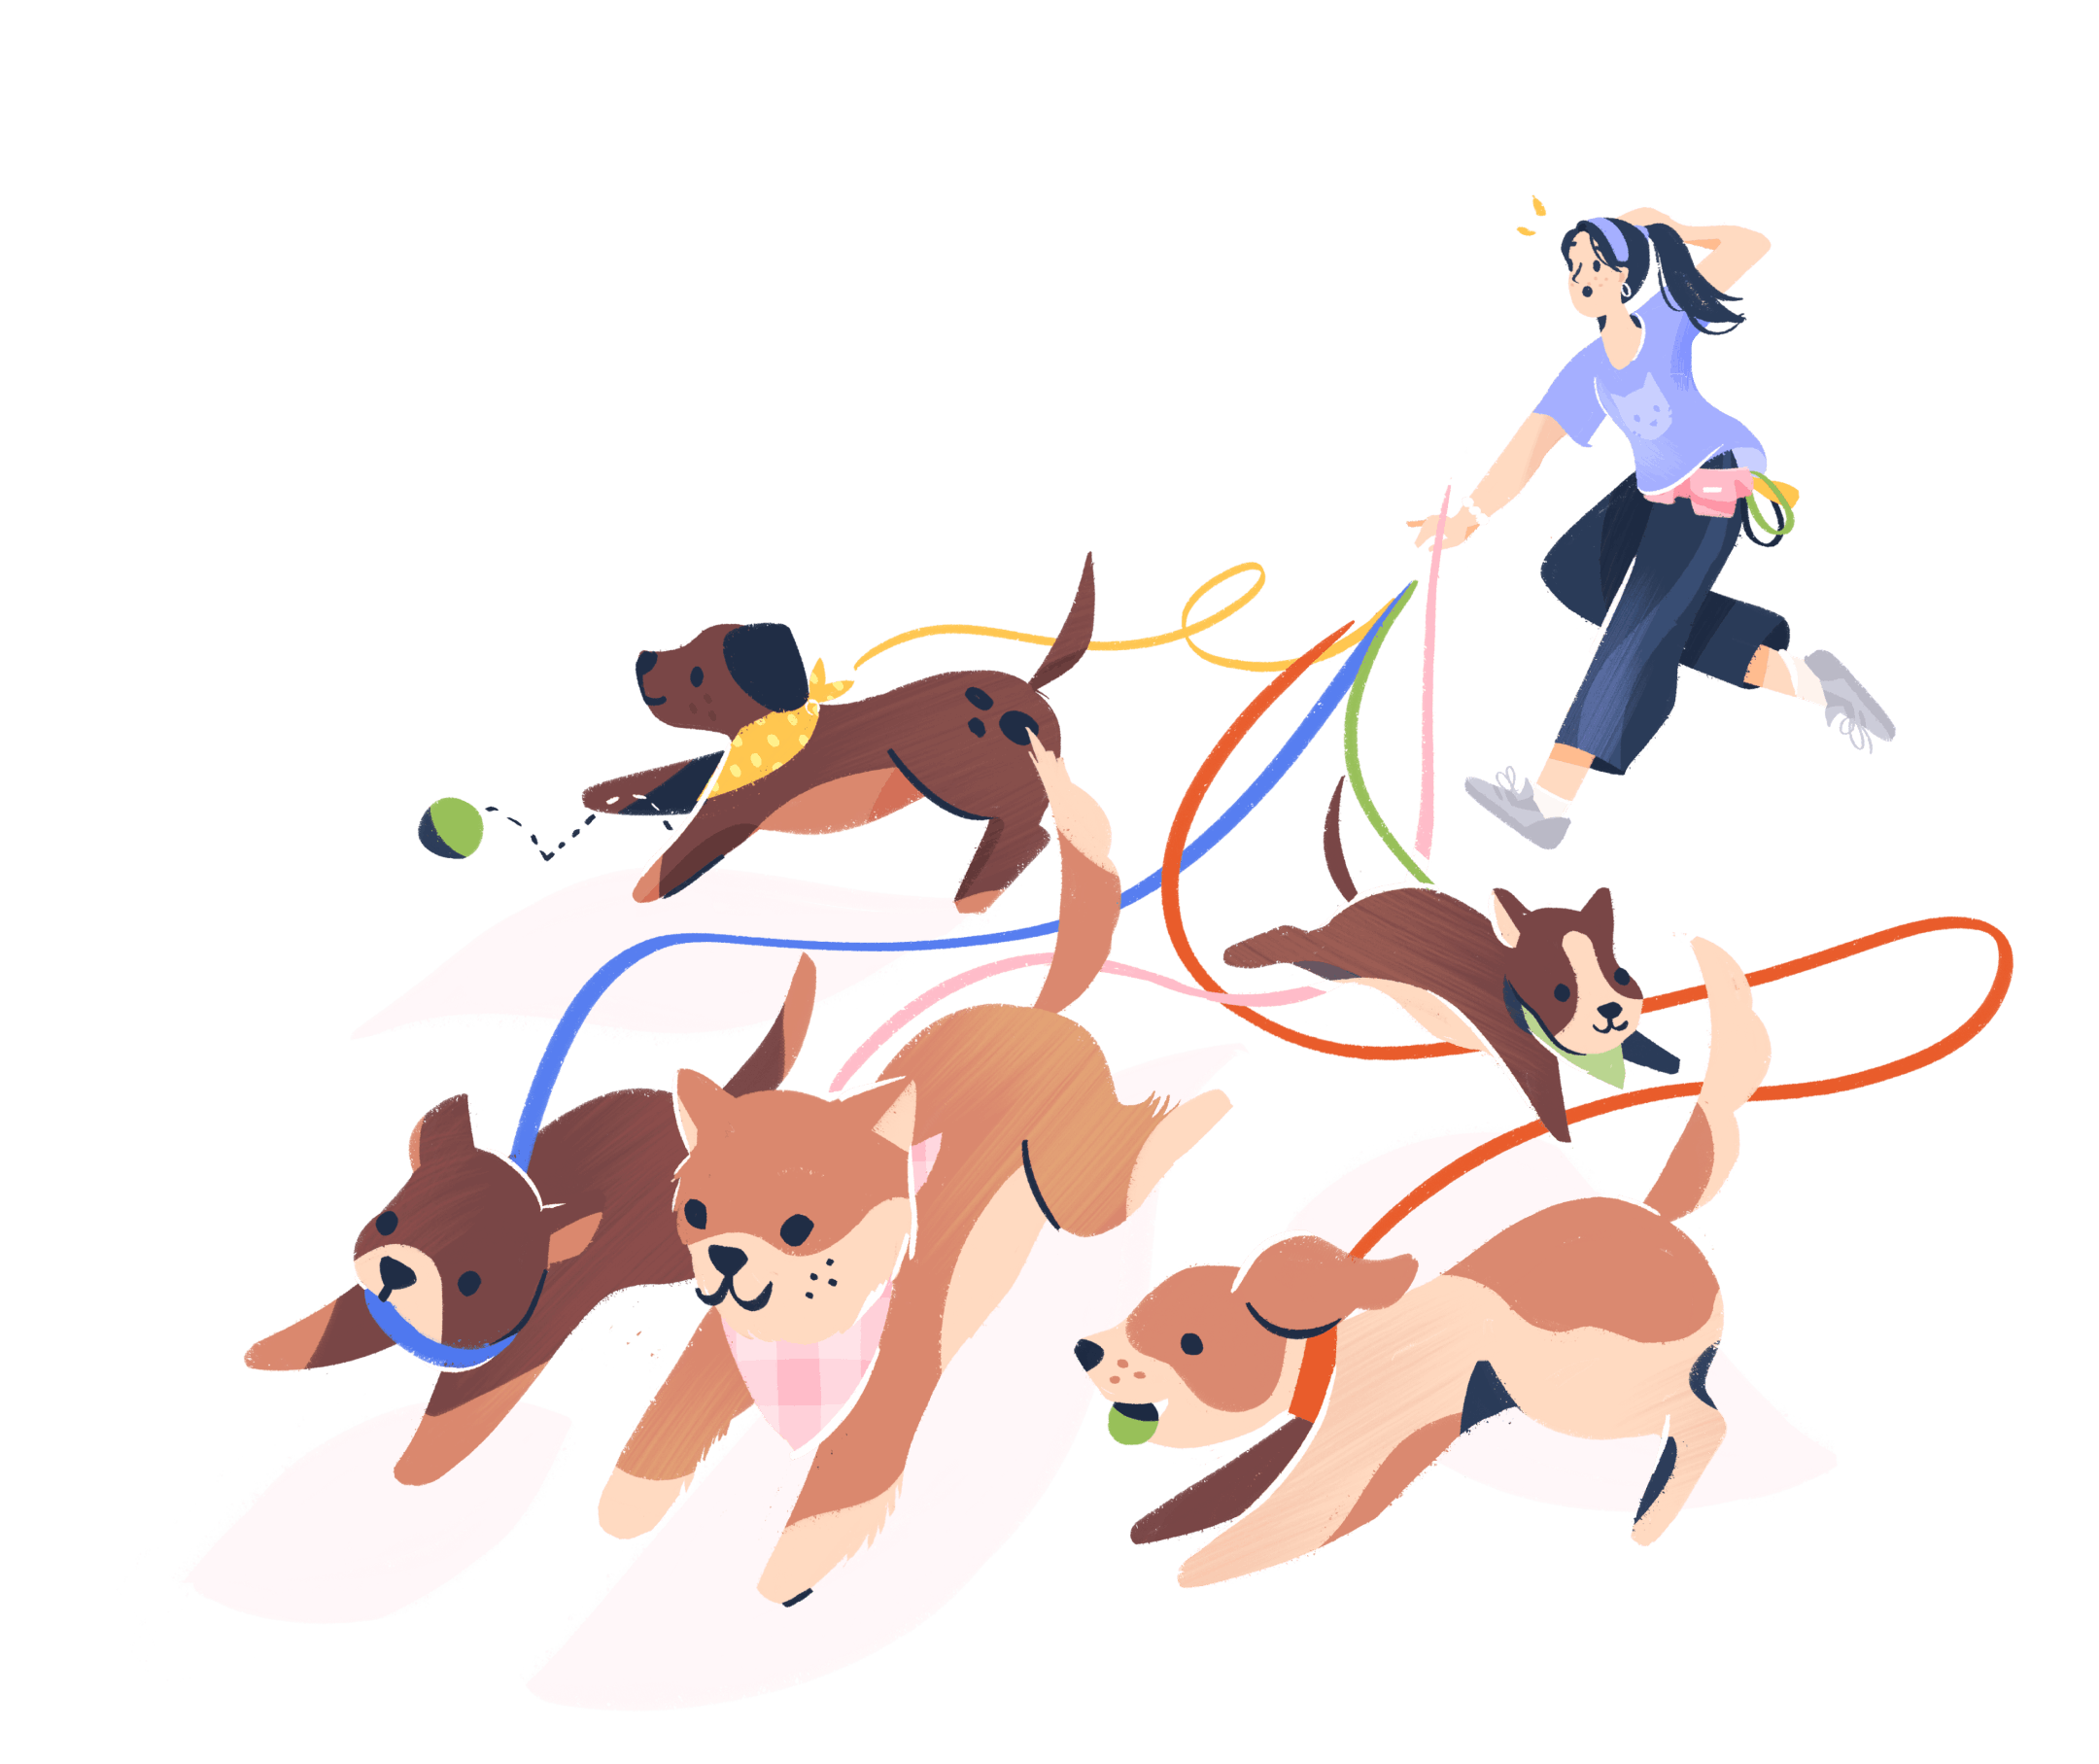 Illustration of a worried person running with many dogs.